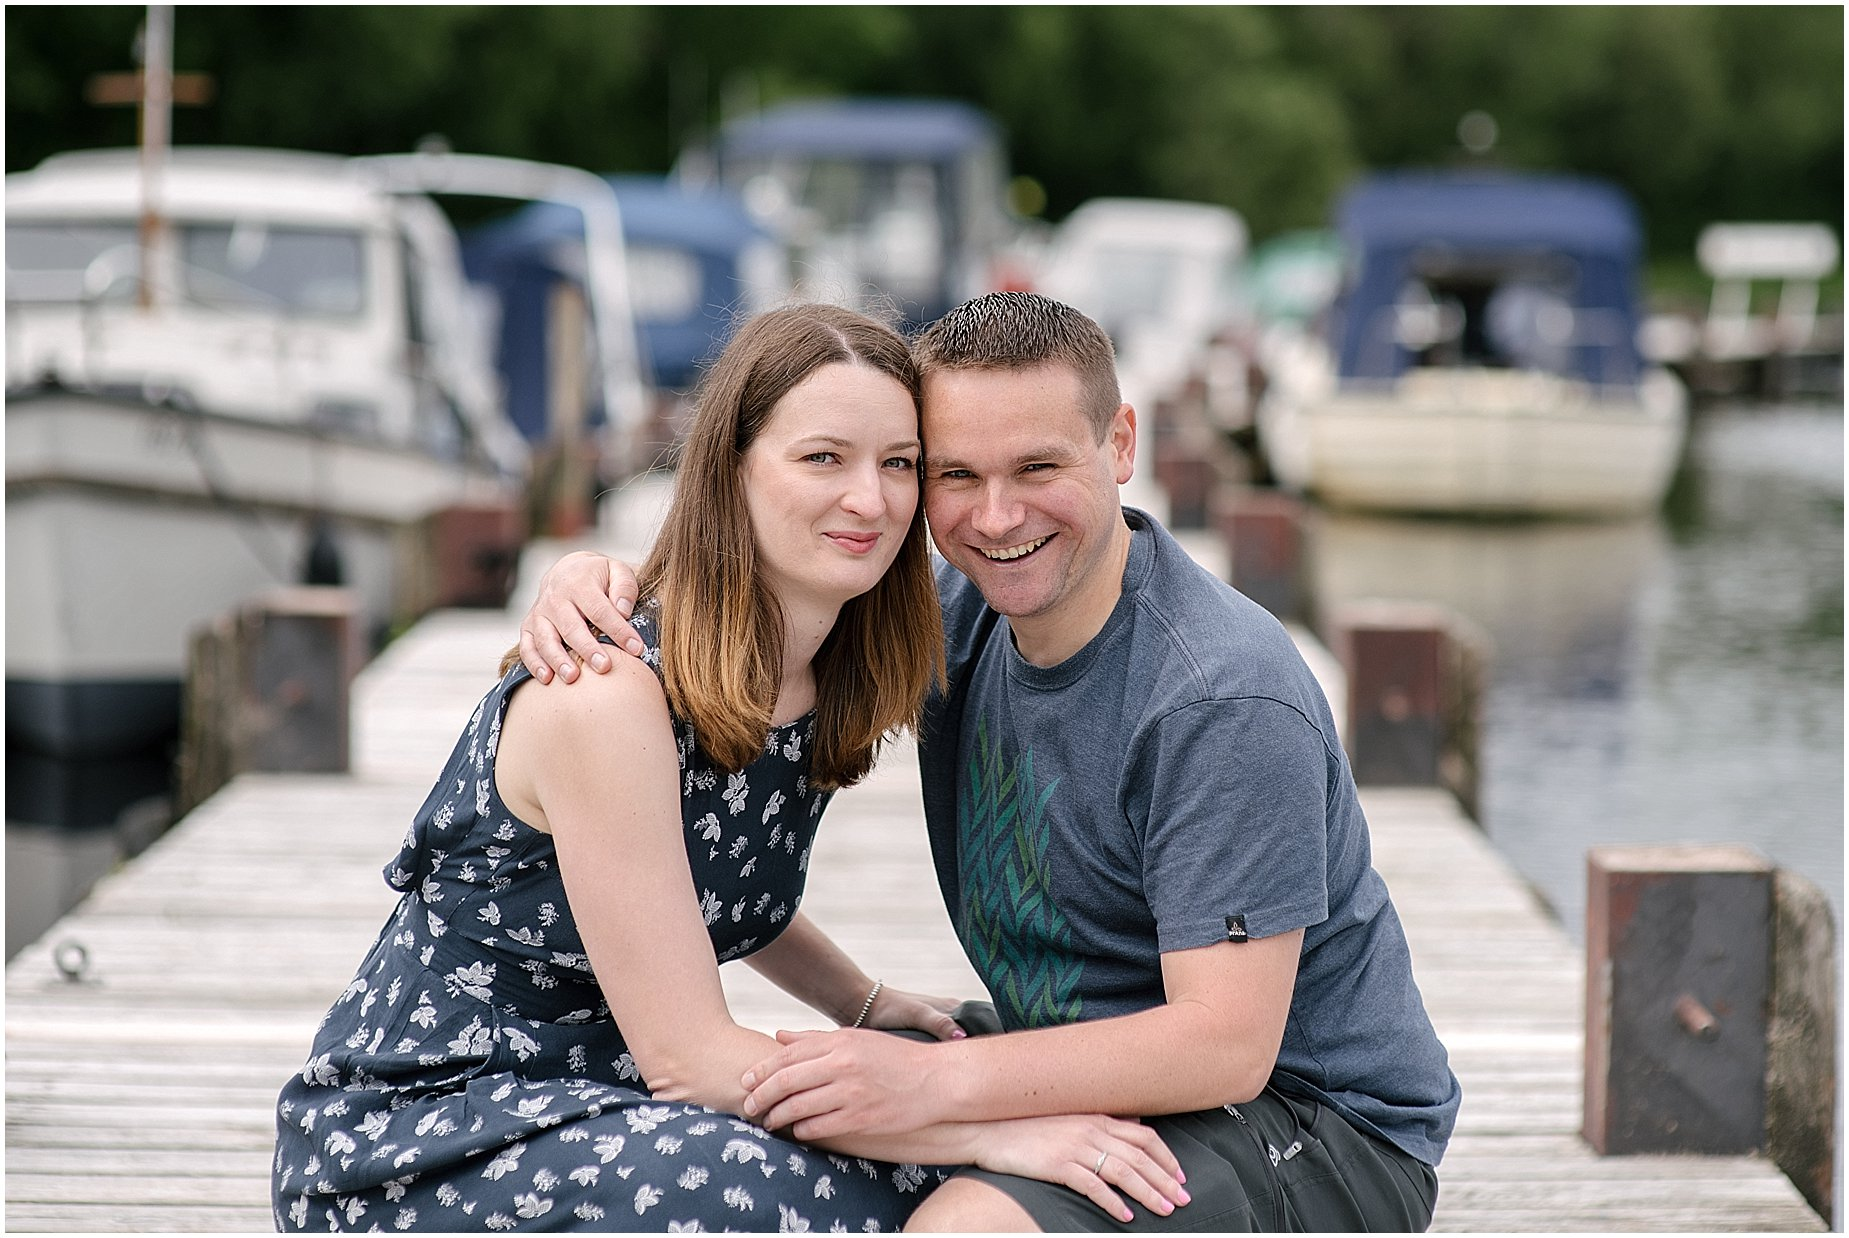 castle-archdale-pre-wedding-jude-browne-photography_0013.jpg